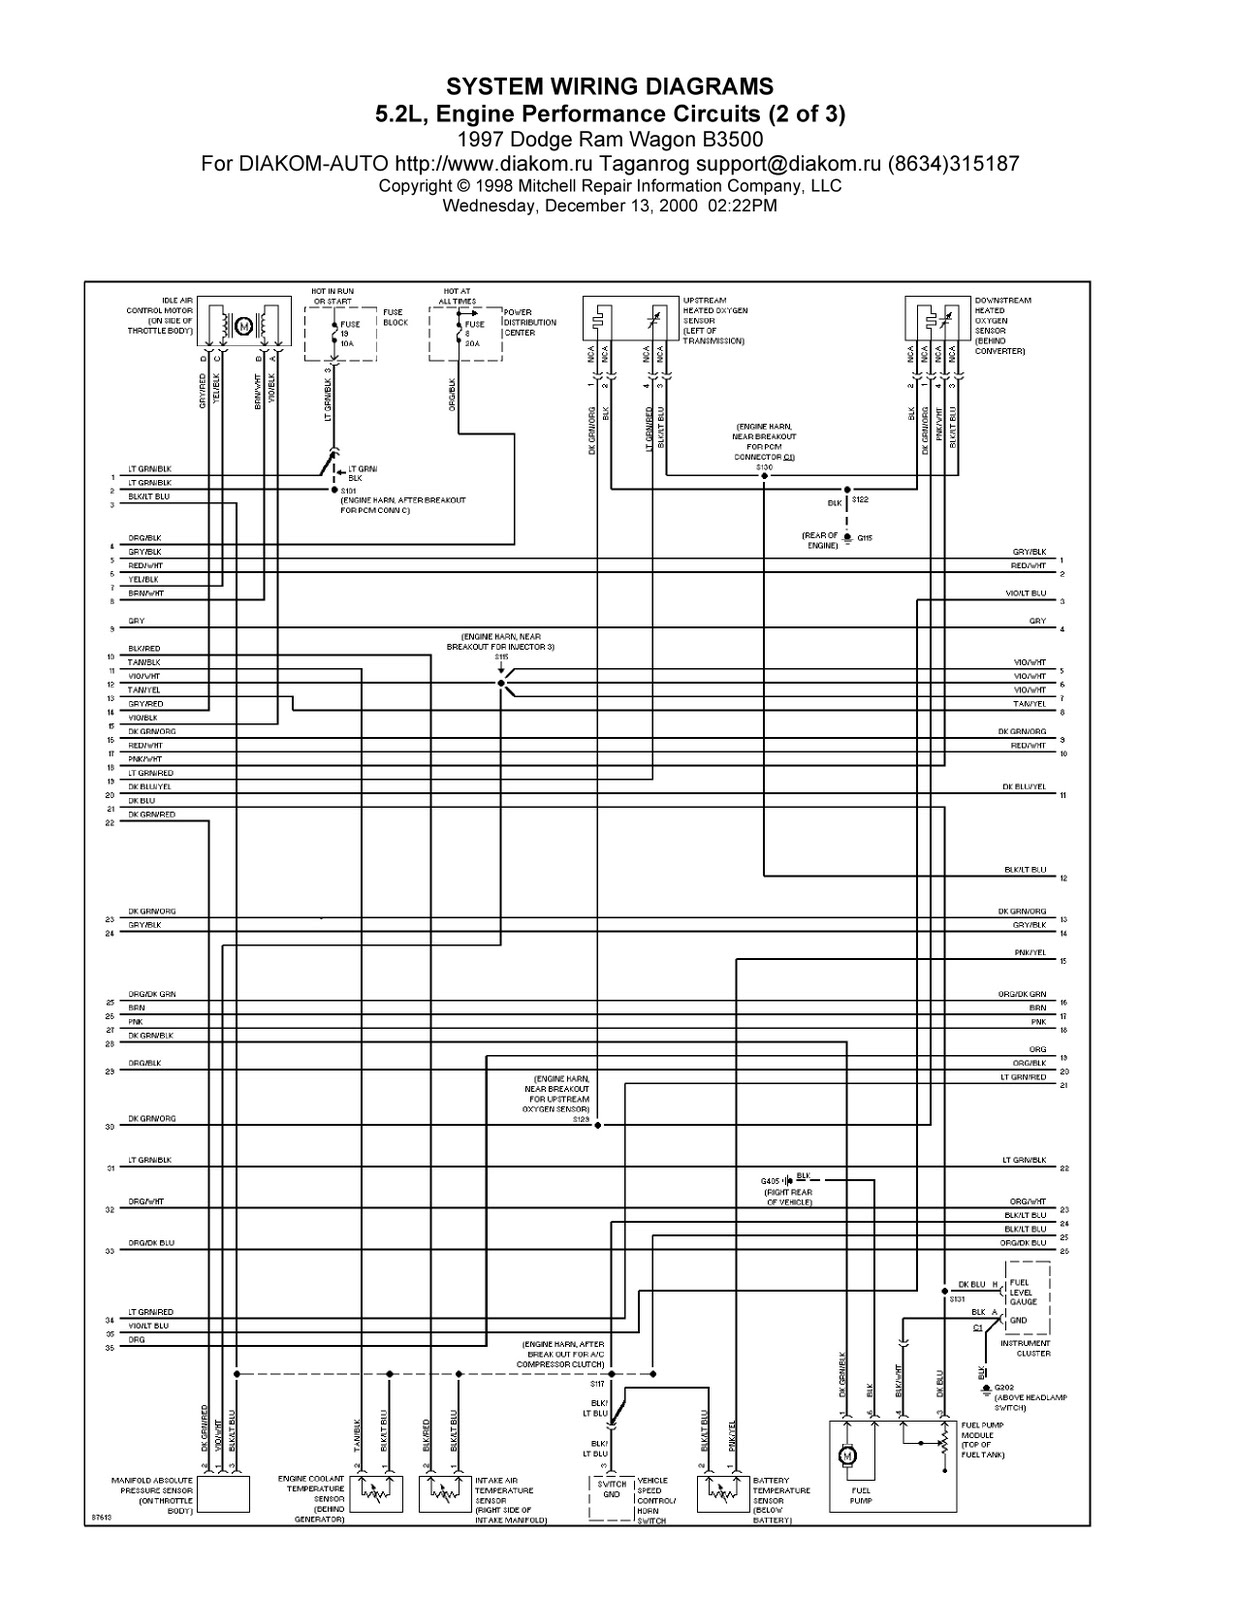 97 Dodge Ram Wiring Diagrams Library Caravan Stereo Diagram 1997 Wagon B3500 System 5 2l